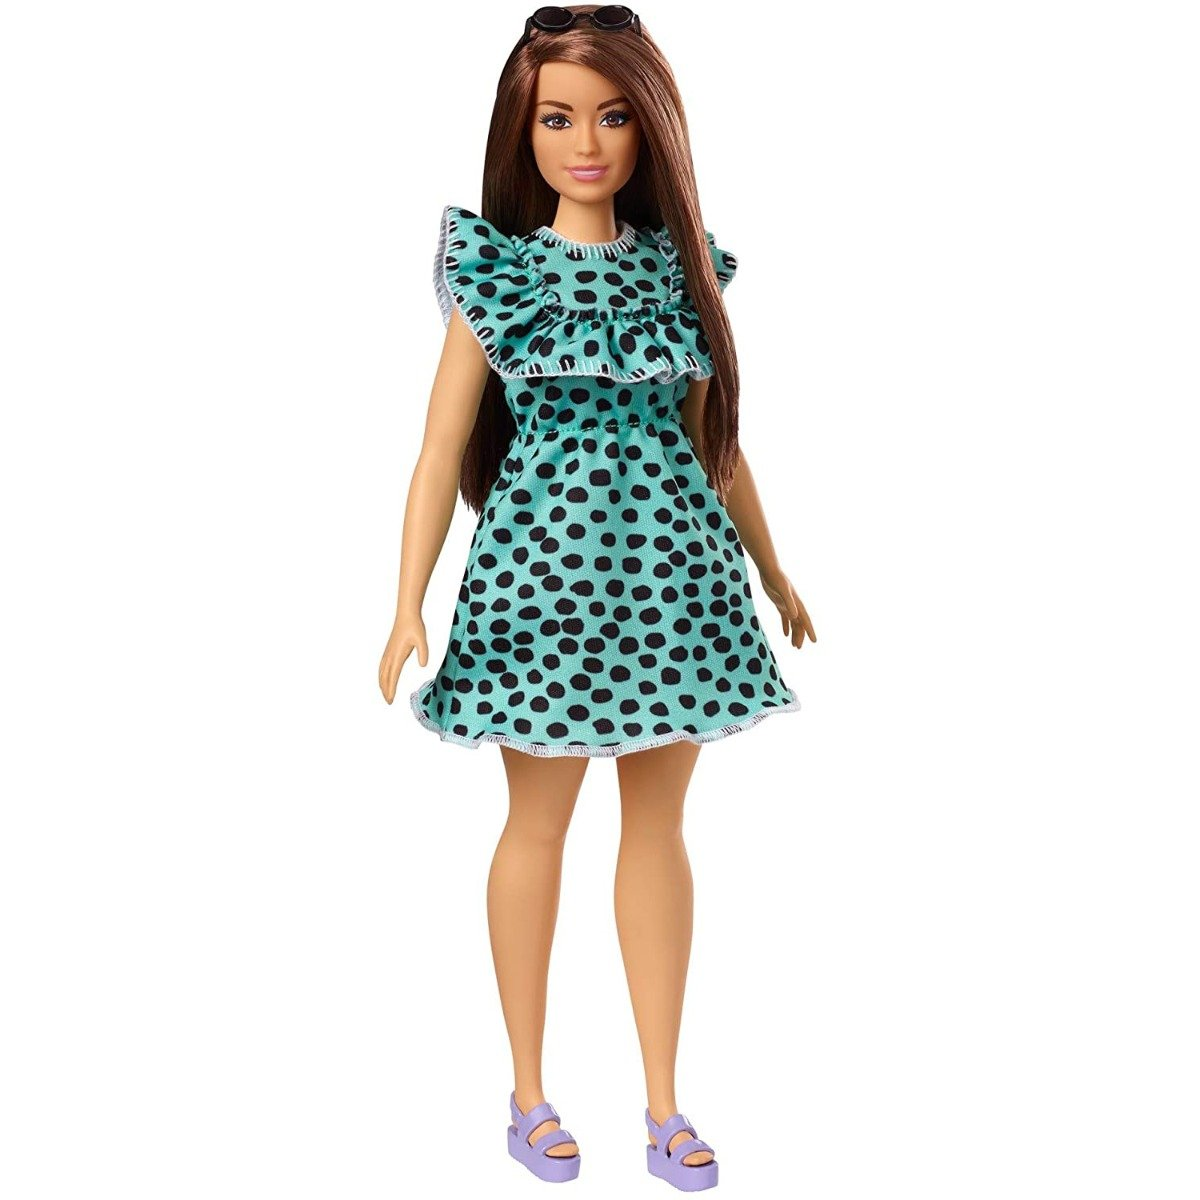 Papusa Barbie Fashionistas, 149 GHW63